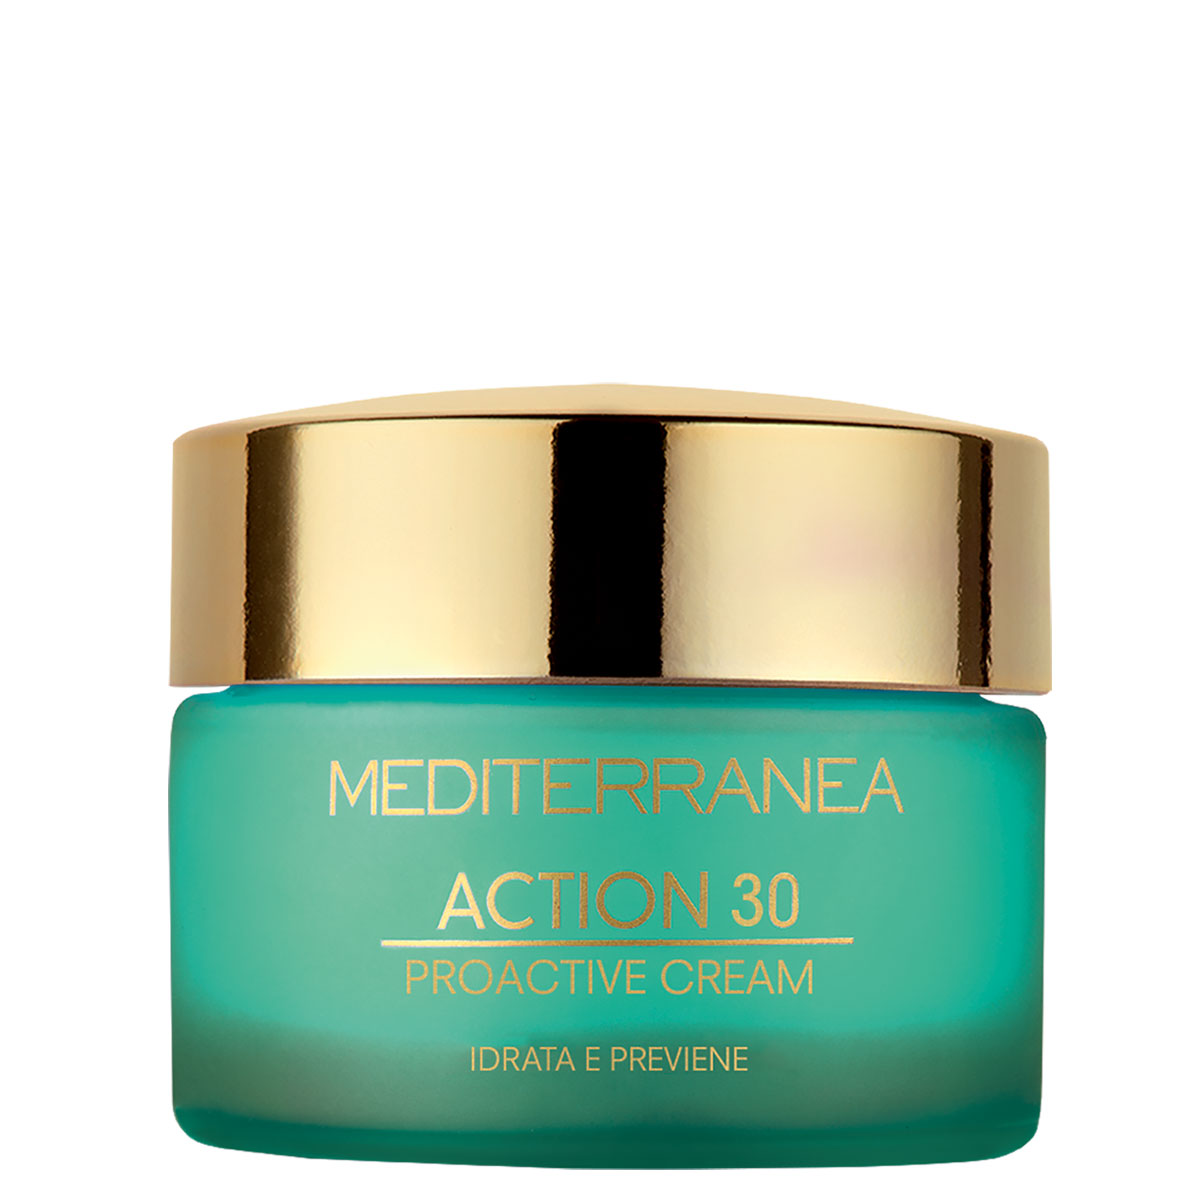 action 30 proactive cream